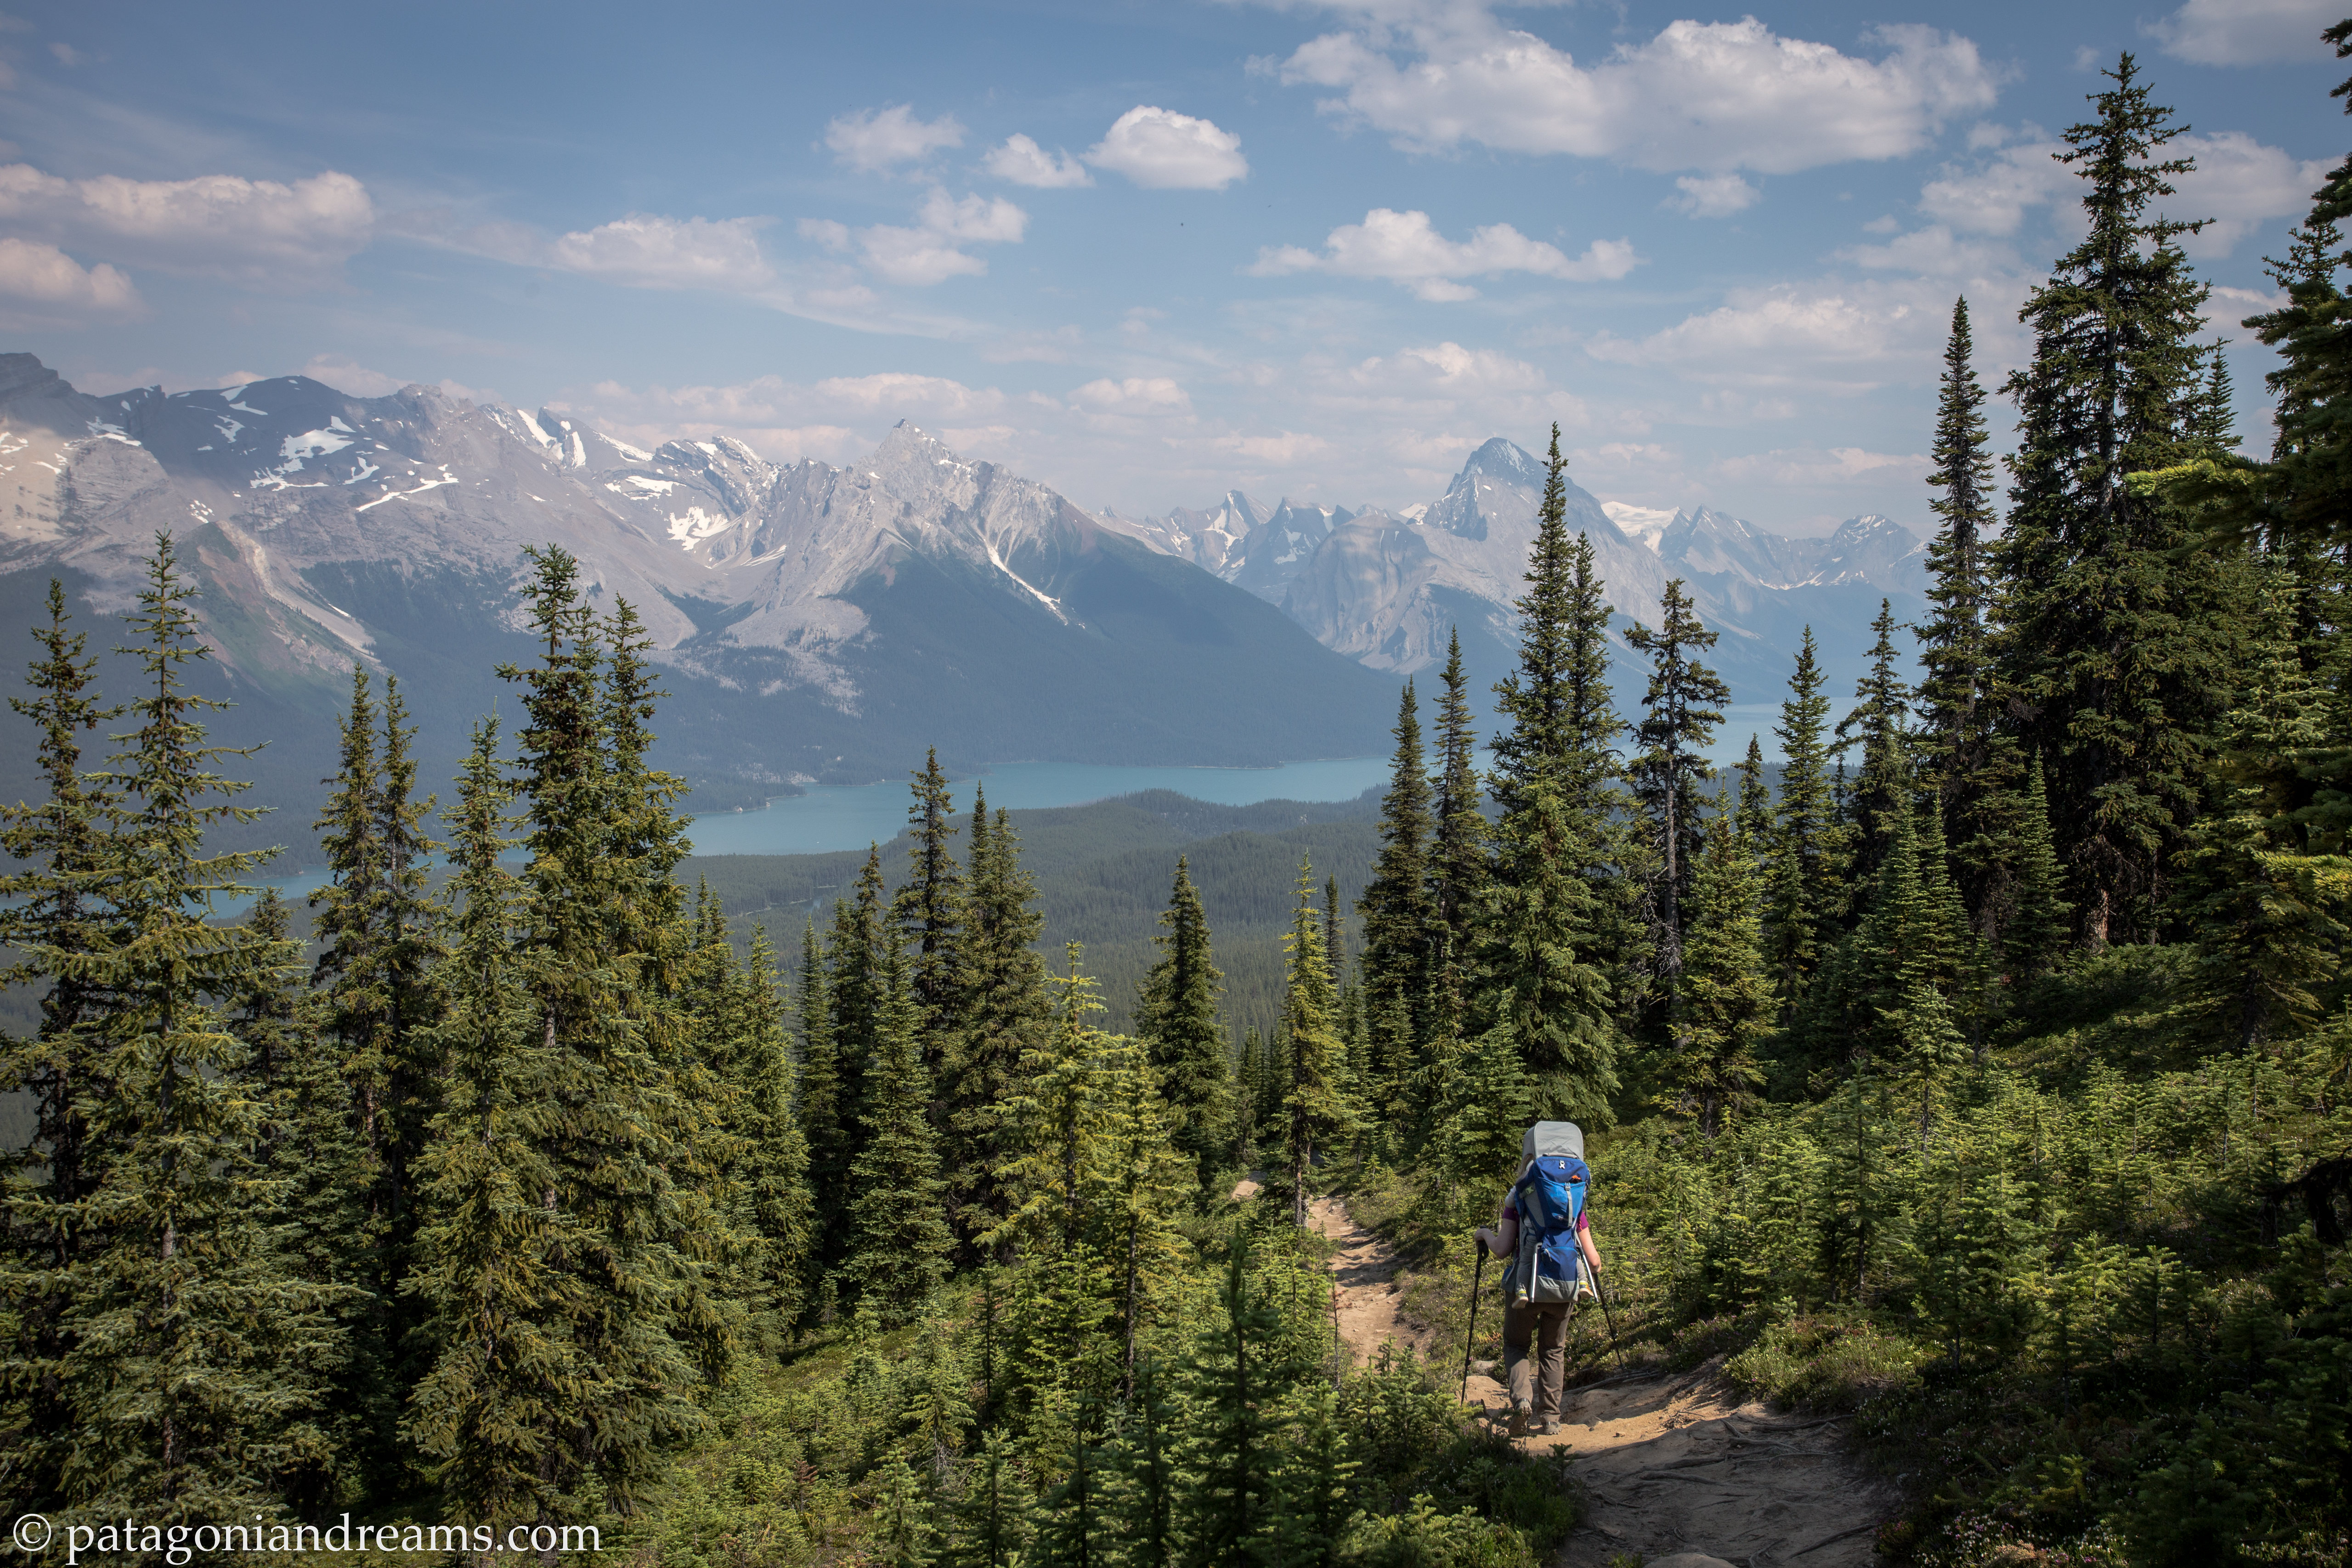 Maligne Lake Viewpoint is a 12 kilometer moderately trafficked out and back trail located near Jasper, Alberta, Canada.